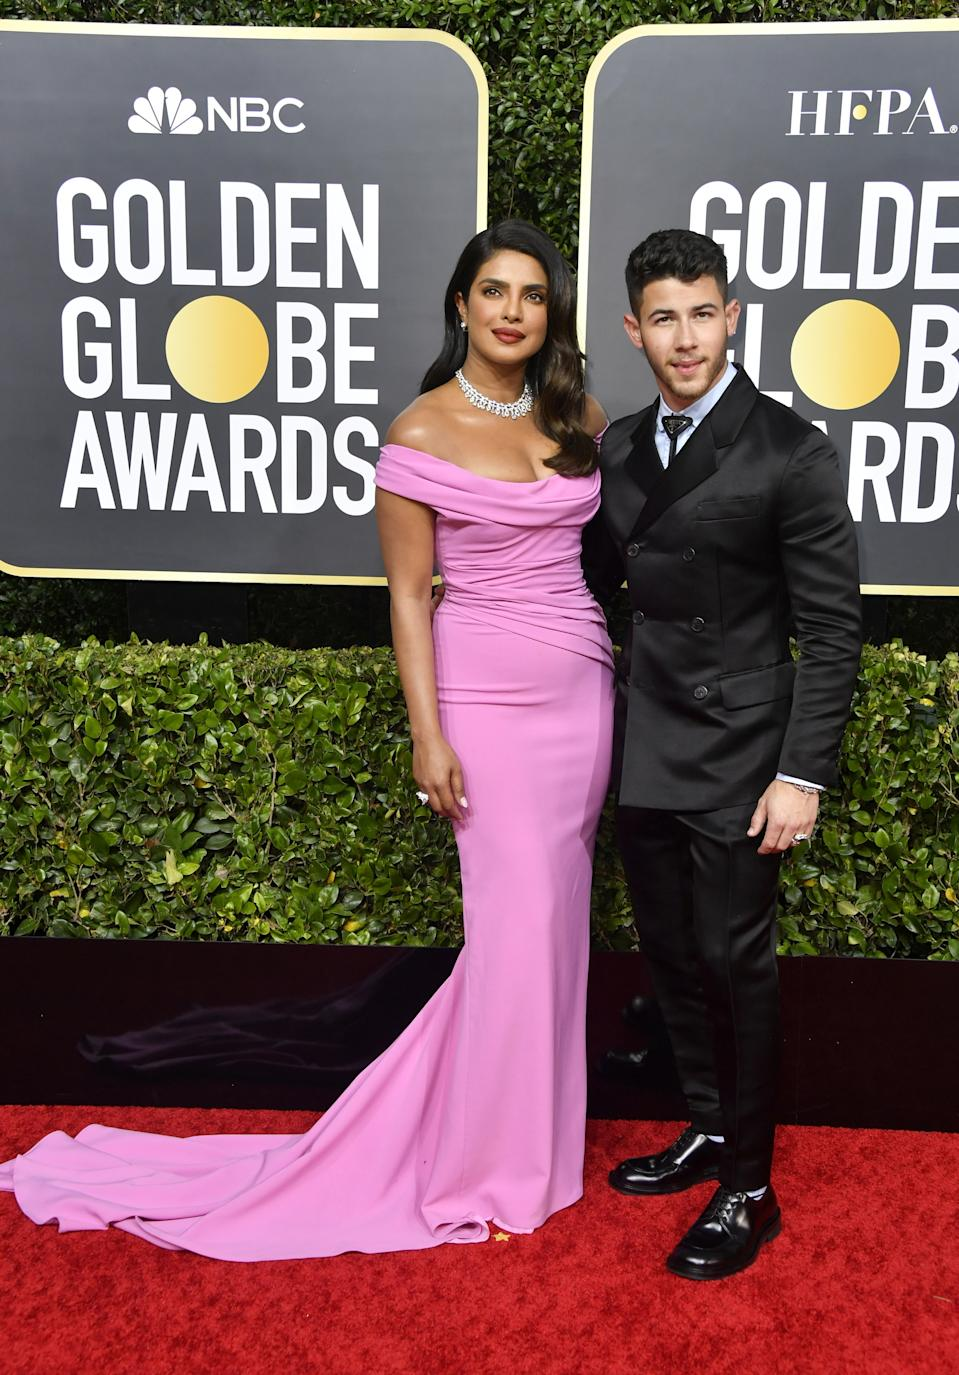 "<h1 class=""title"">Priyanka Chopra Jonas in Christian Louboutin shoes and Bulgari jewelry and Nick Jonas in Bulgari jewelry</h1><cite class=""credit"">Photo: Getty Images</cite>"